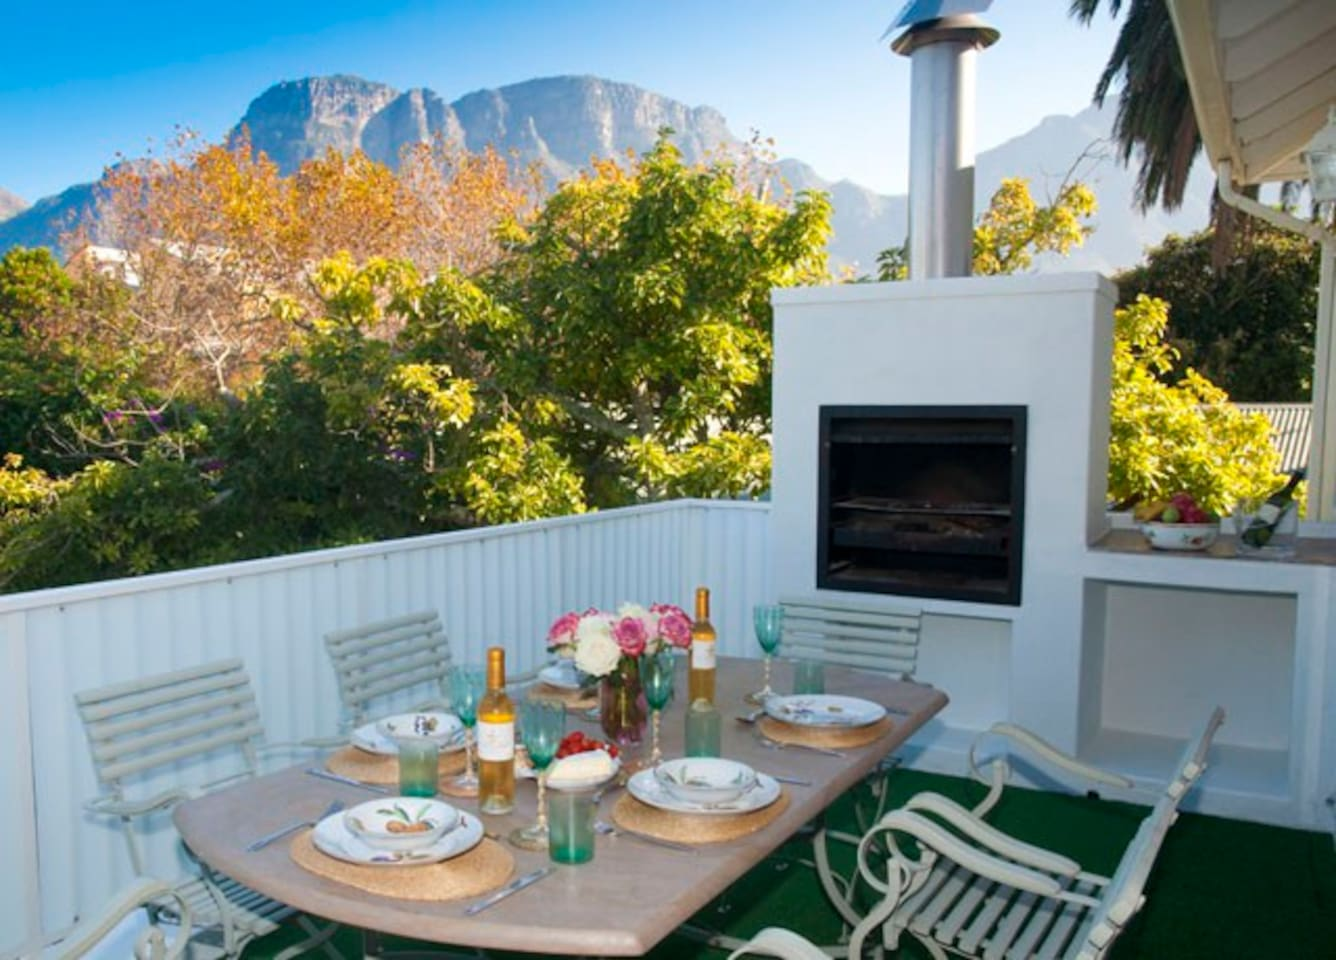 Private patio with barbeque and lovely views of the mountains